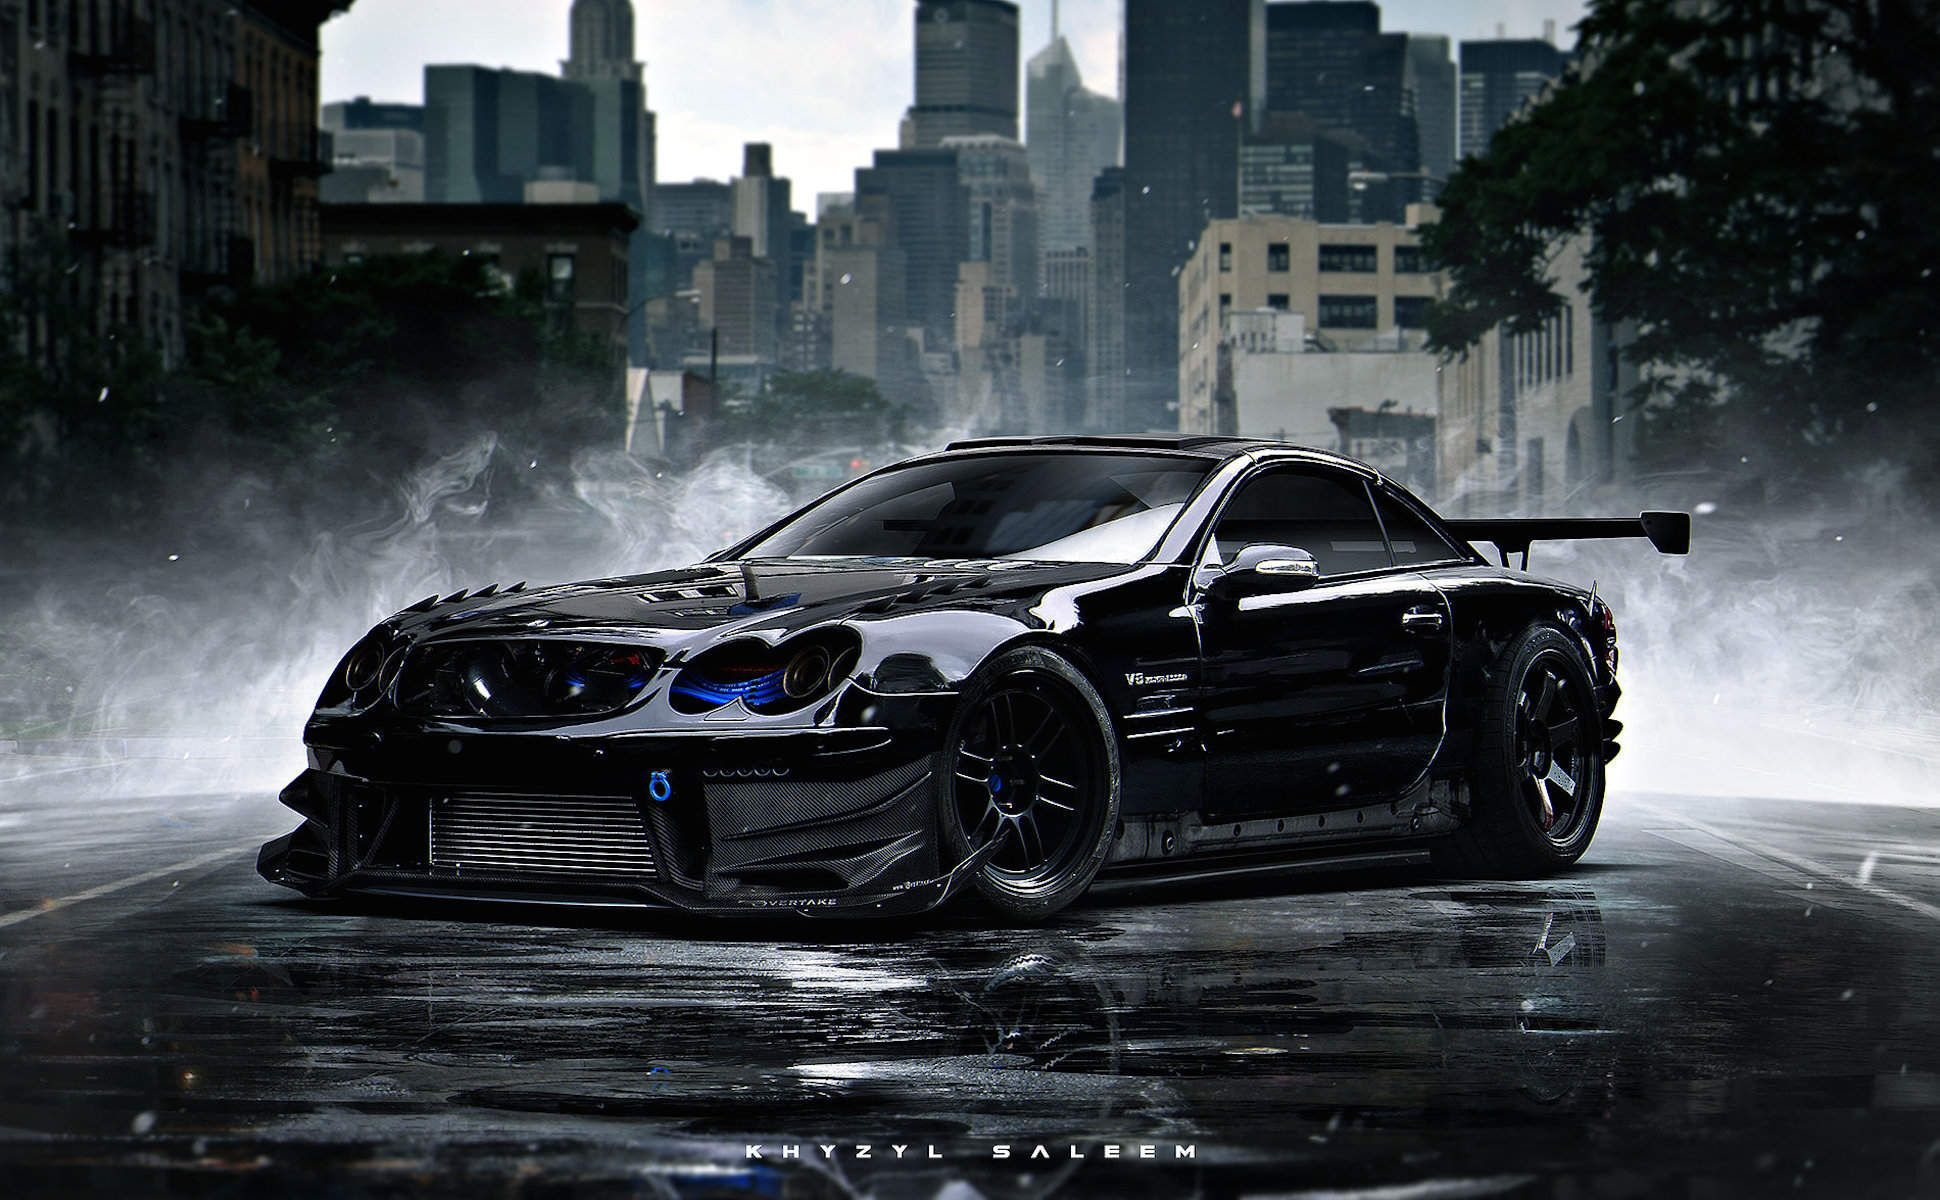 This is painting the most insane sci fi vehicles on the planet khyzyl saleem is designing your futuristic dream car